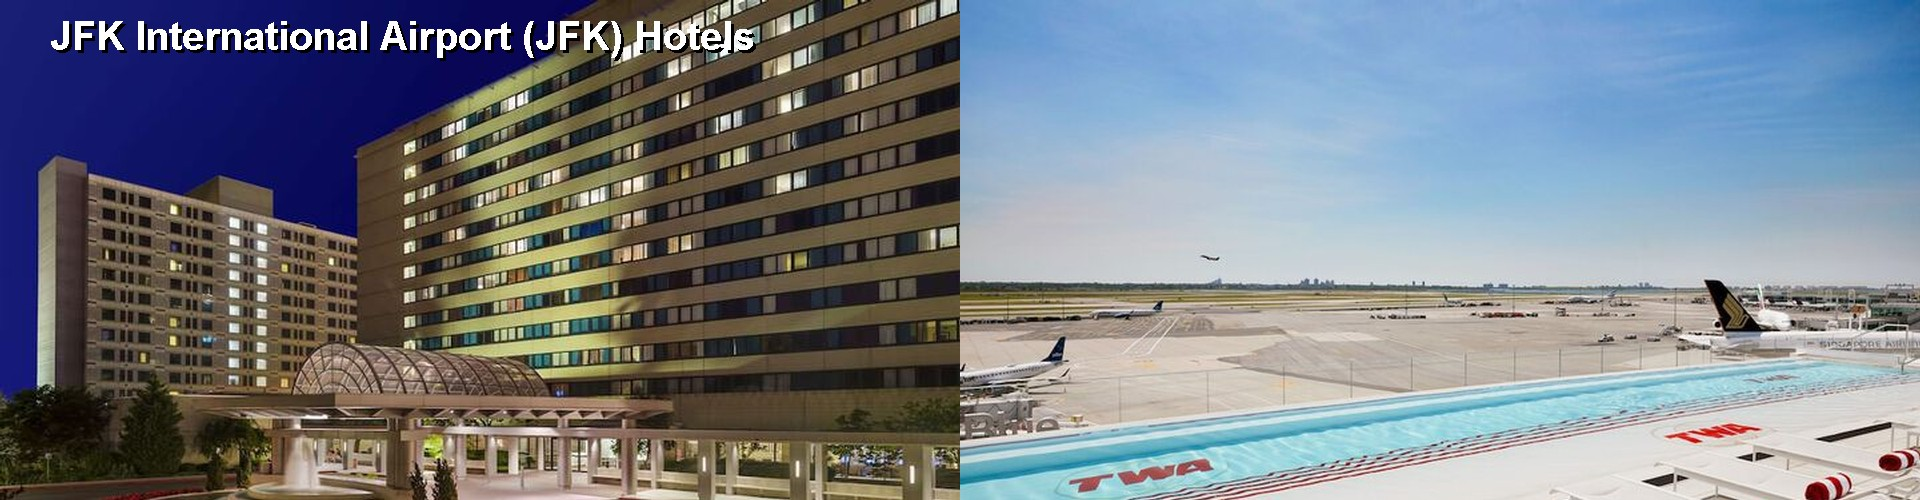 5 Best Hotels Near Jfk International Airport